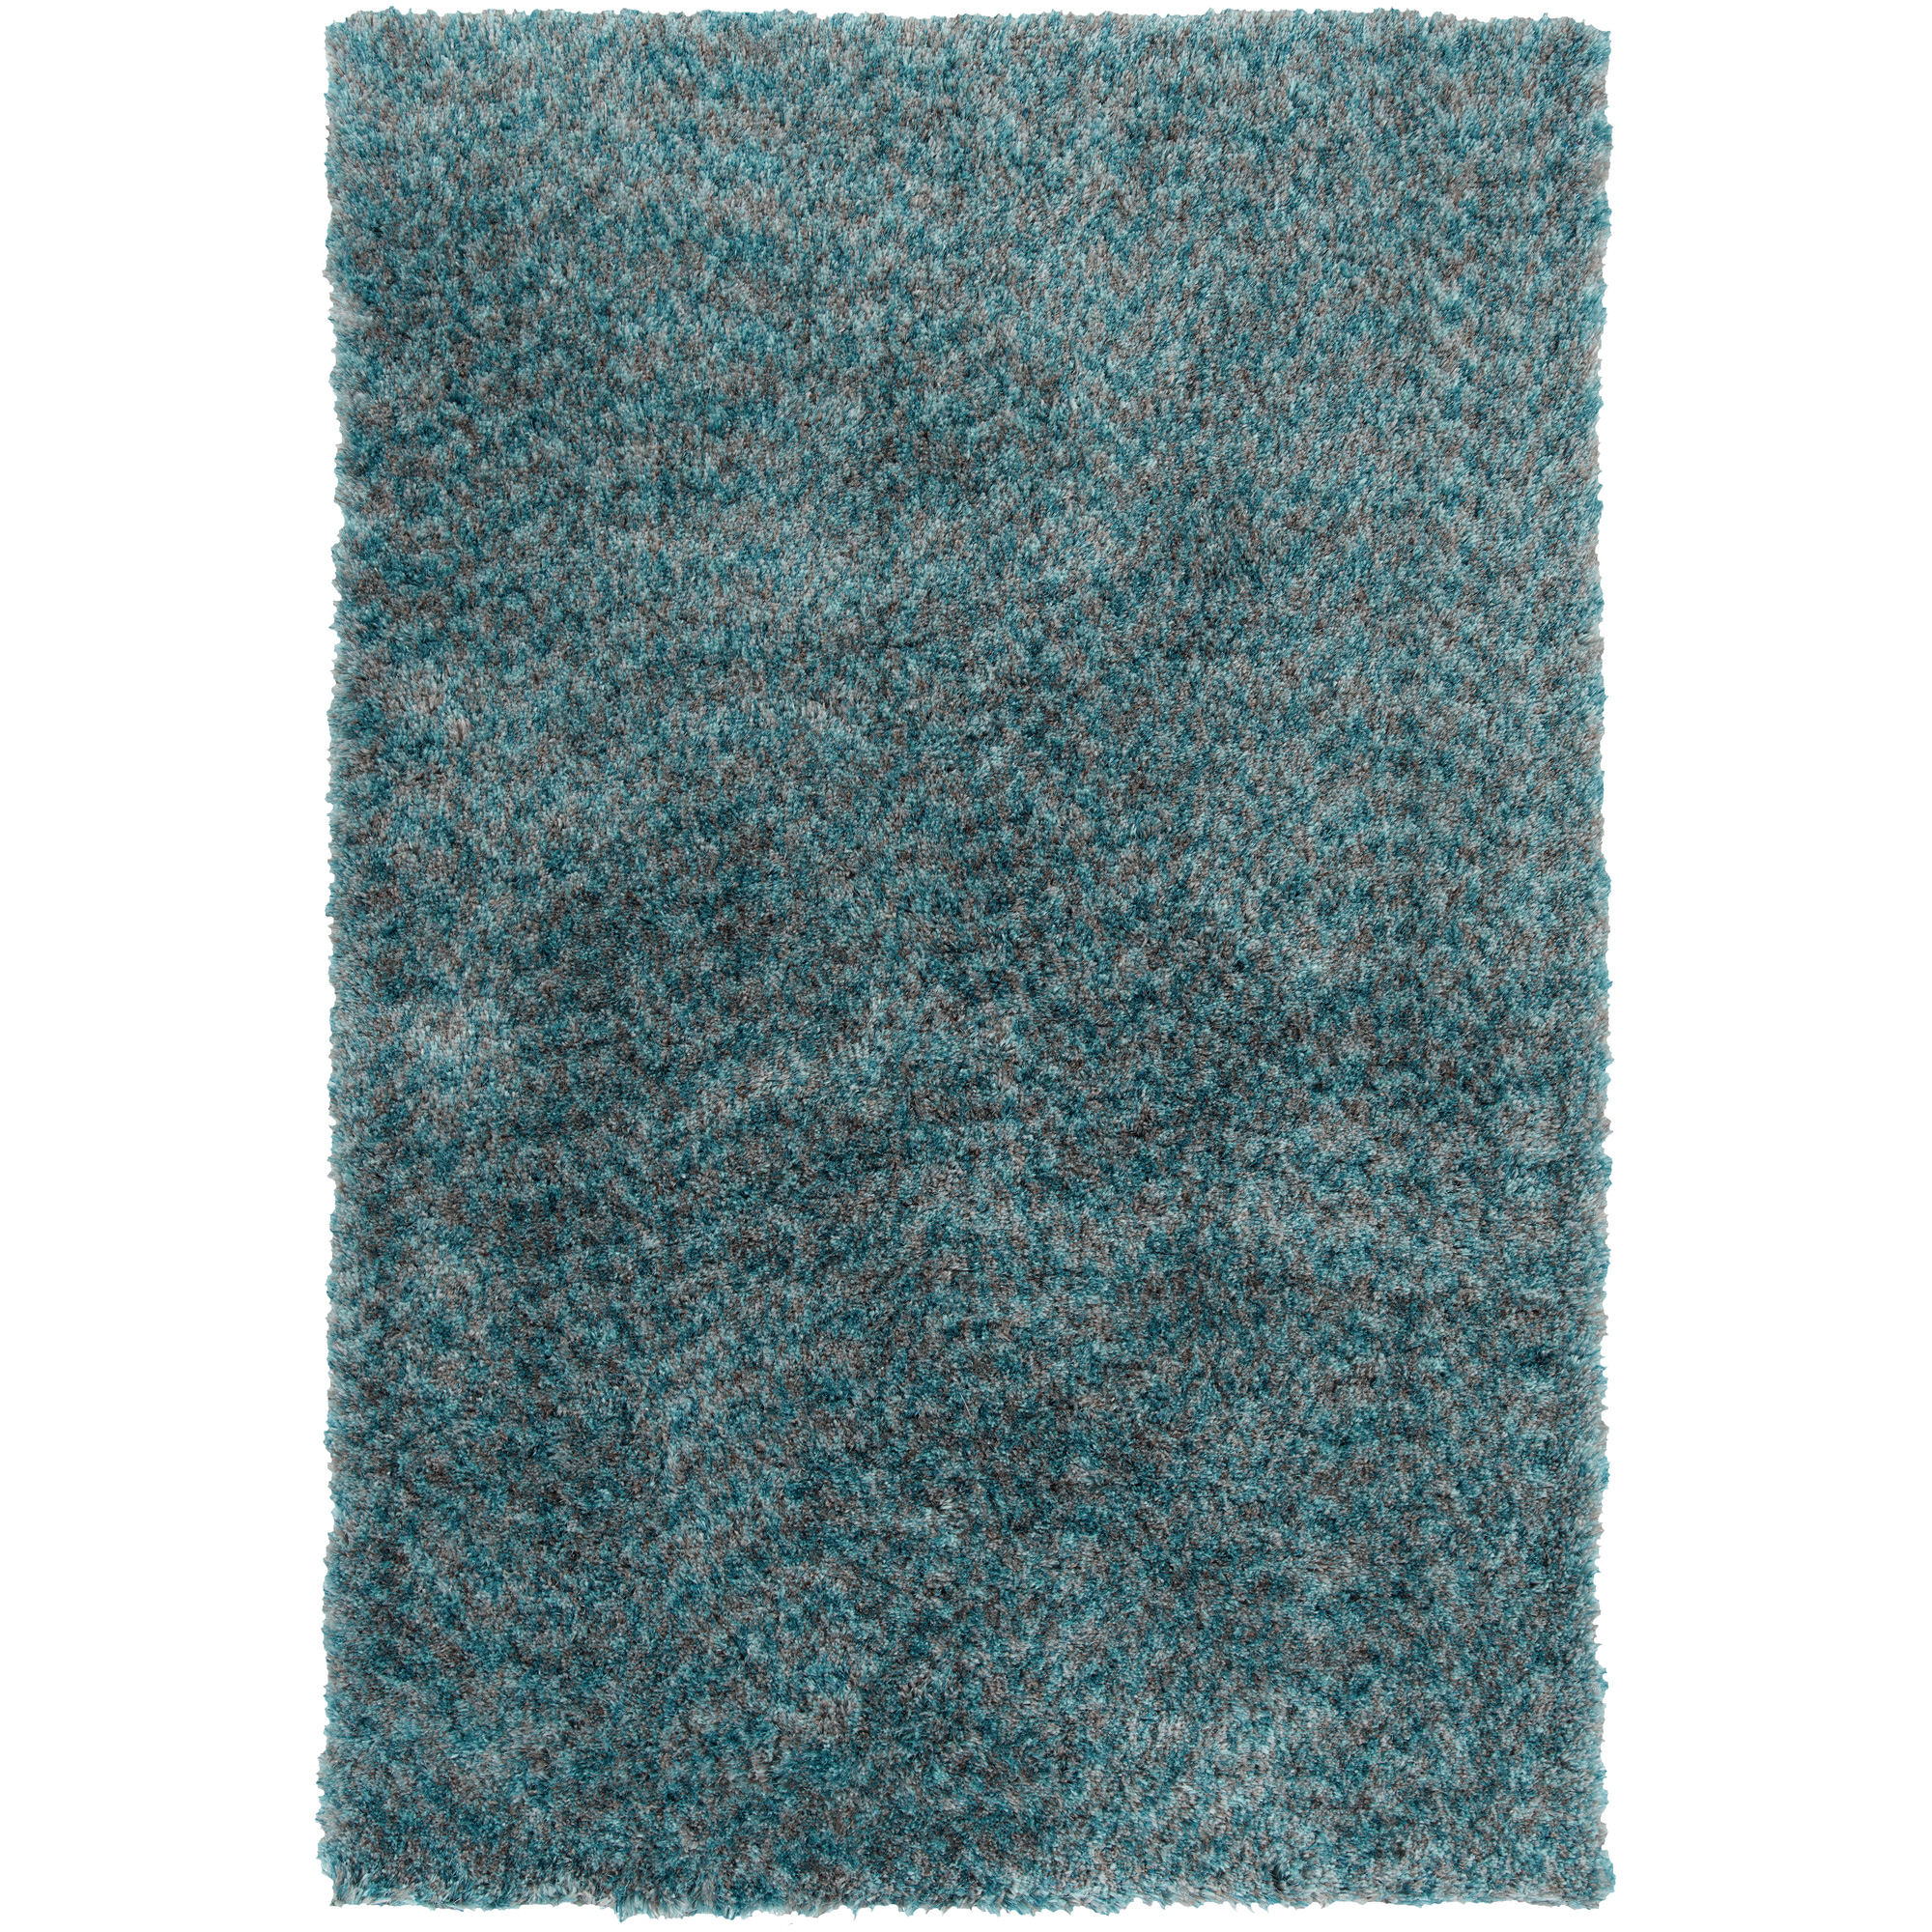 Dalyn Rug | Cabot Teal 8x10 Area Rug